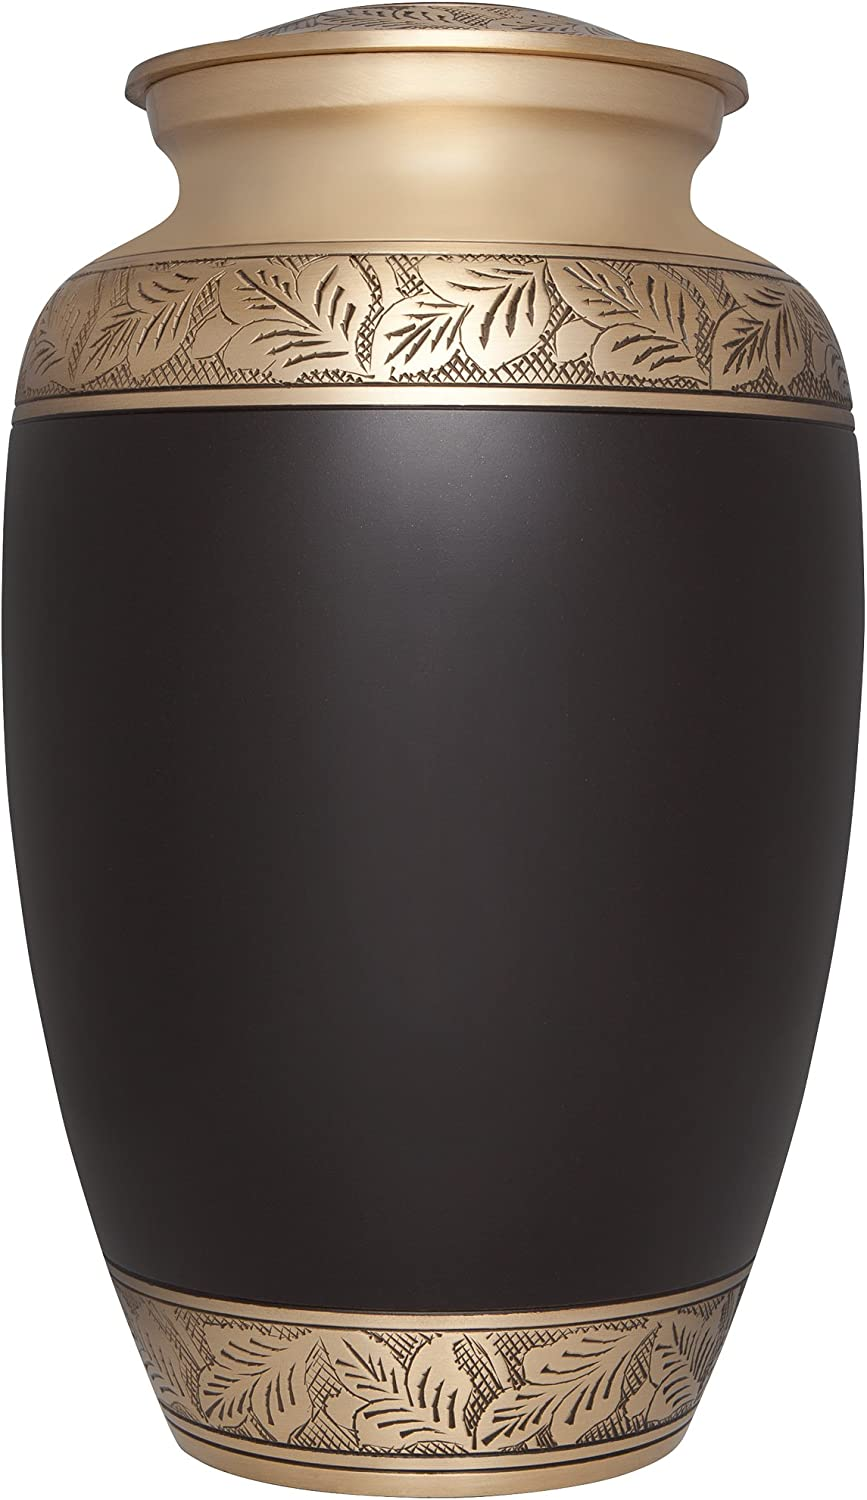 Brown Funeral Urn by Liliane Memorials - Cremation Urn for Human Ashes - Hand Made in Brass - Suitable for Cemetery Burial or Niche - Large Size fits remains of Adults up to 200 lbs - Yiyani Model